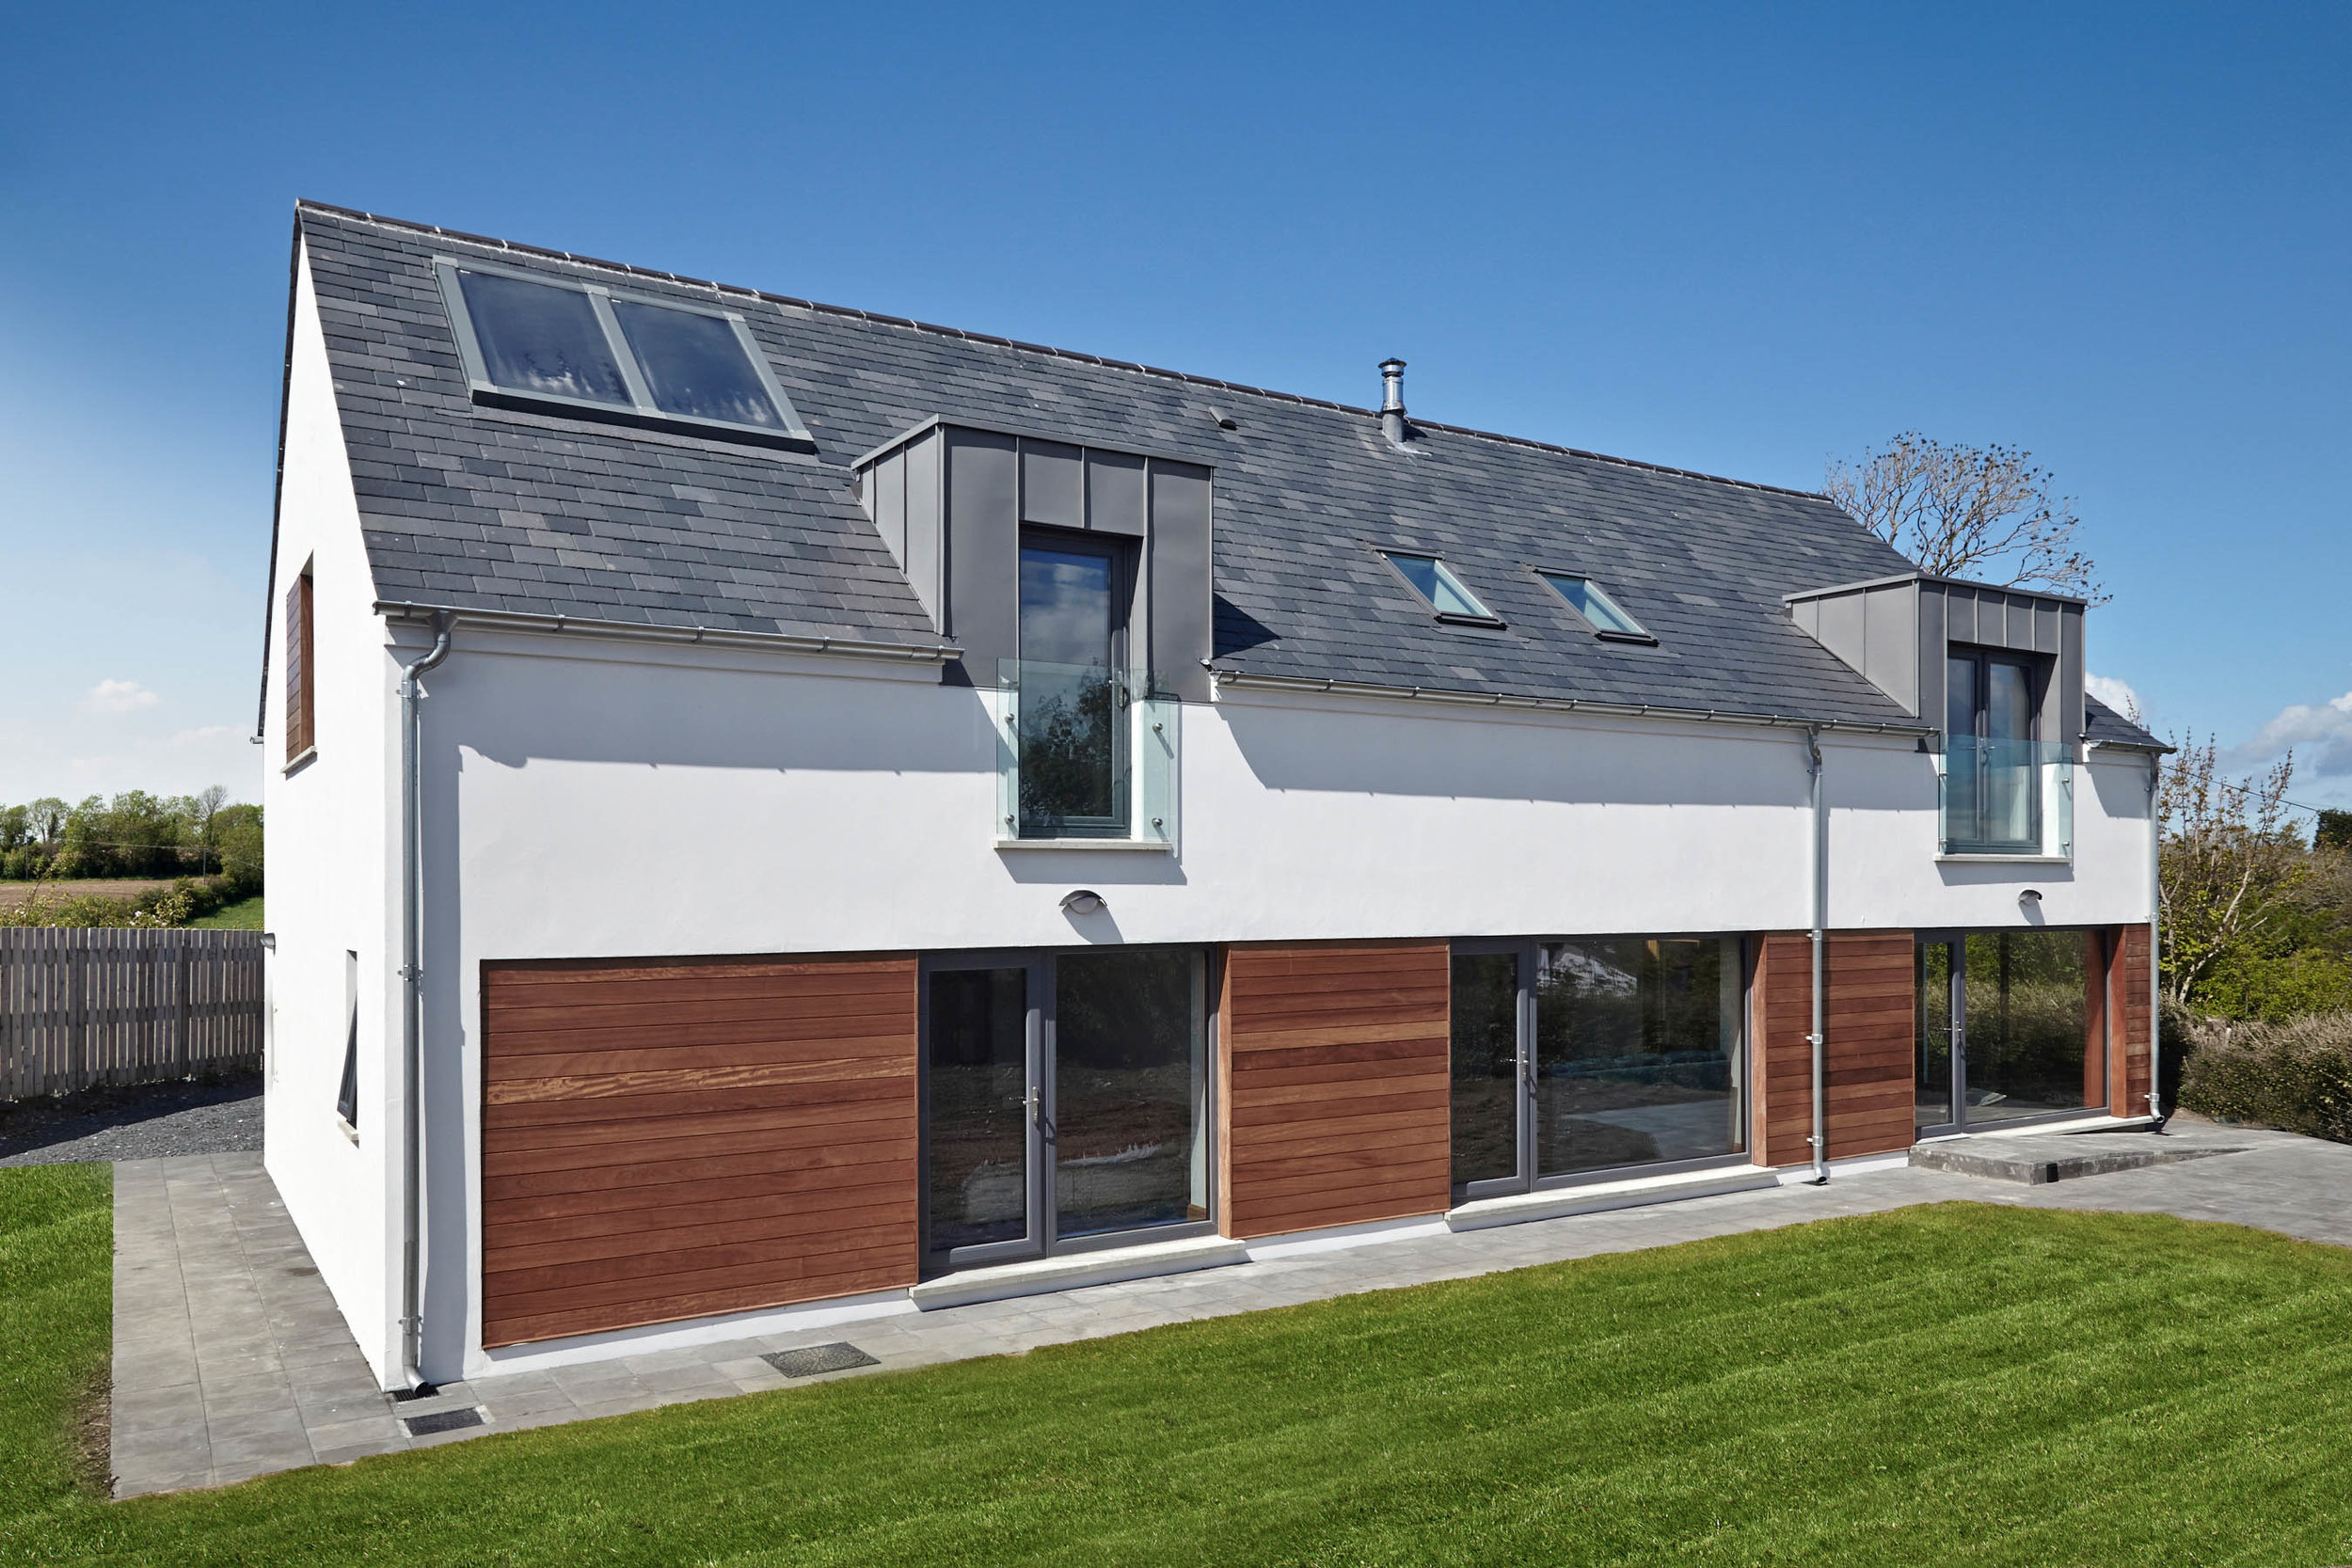 Paul_McAlister_Architects_Passive_House_View.jpg